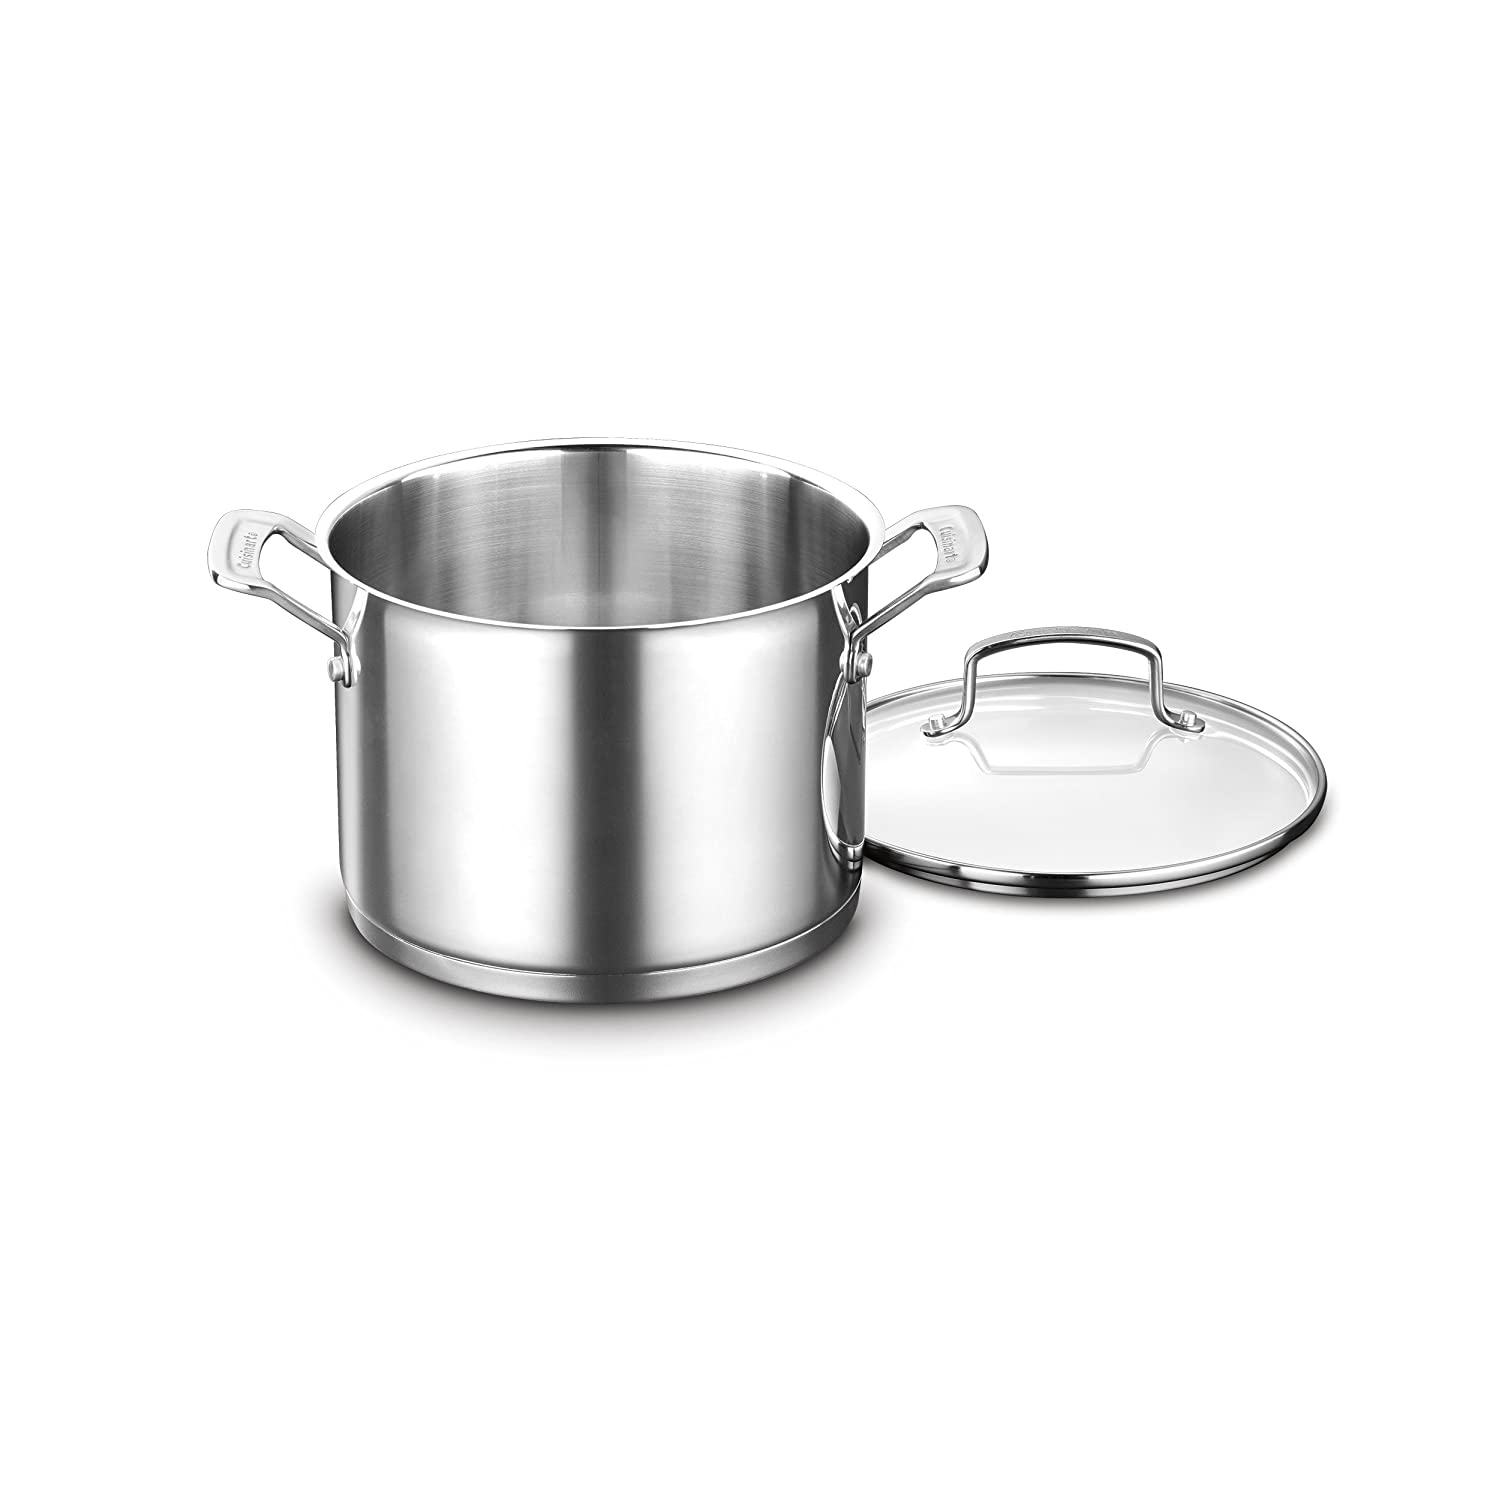 6-Quart. Stockpot w/Cover, Stainless Steel